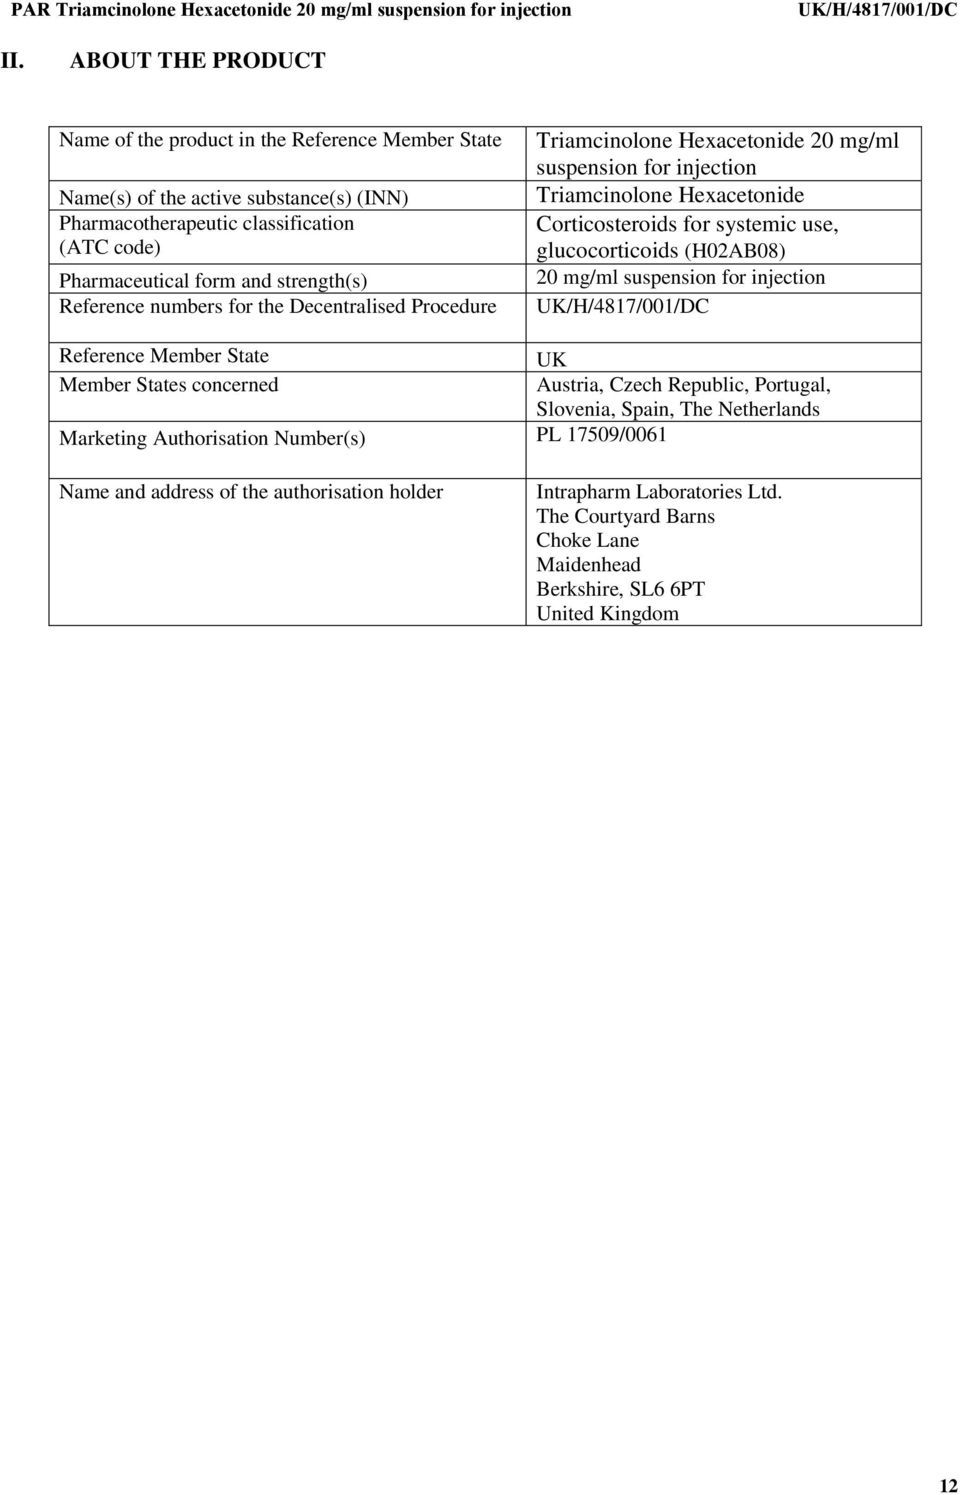 glucocorticoids (H02AB08) 20 mg/ml suspension for injection Reference Member State UK Member States concerned Austria, Czech Republic, Portugal, Slovenia, Spain, The Netherlands